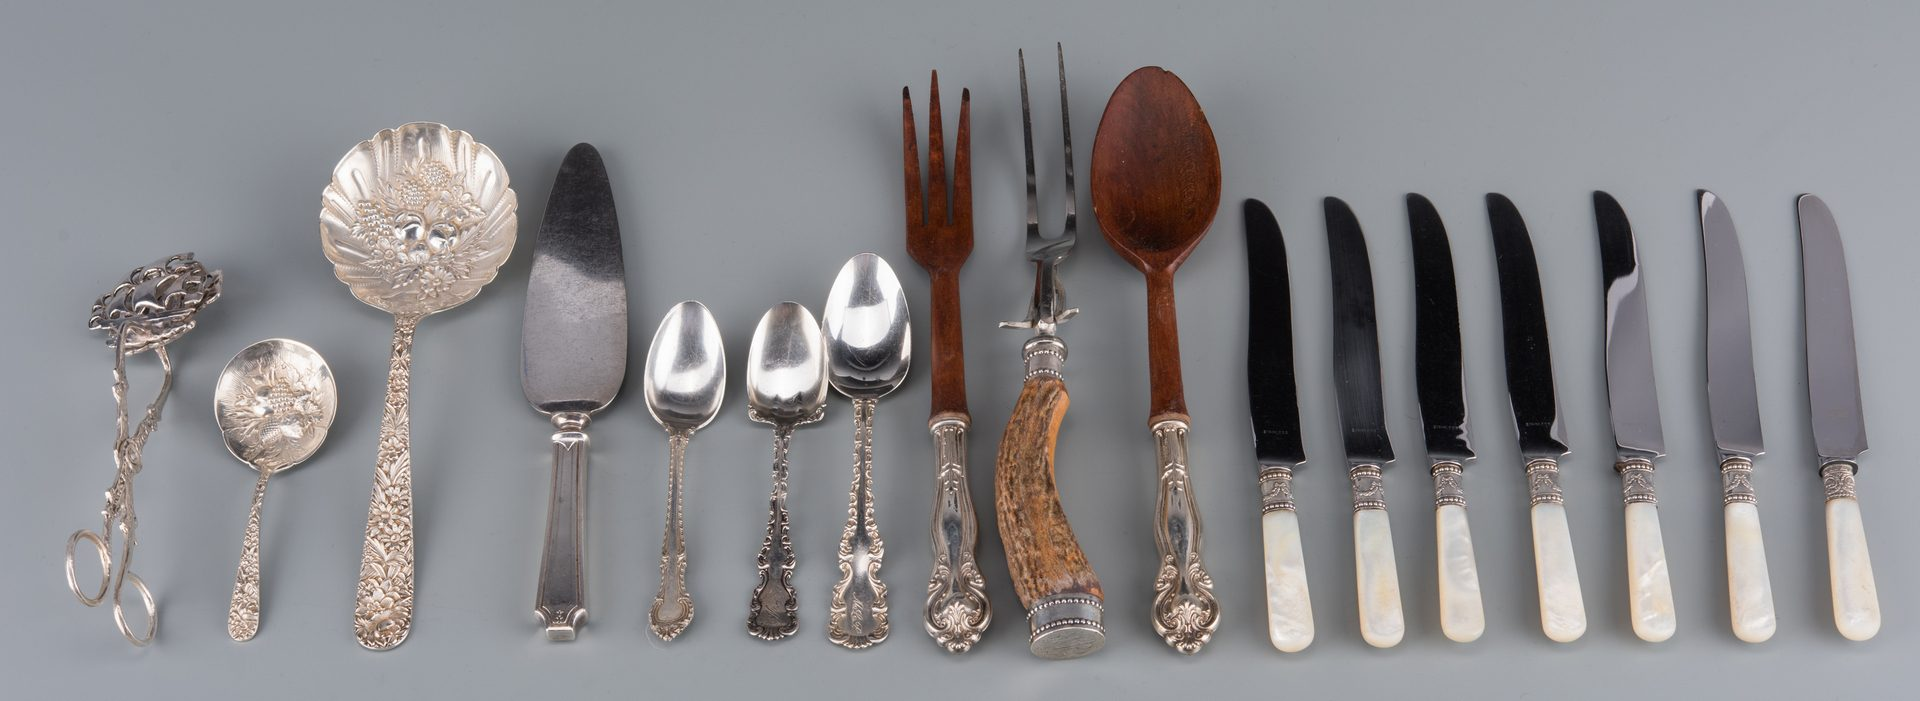 Lot 922: 35 pc. Asst. Sterling Flatware